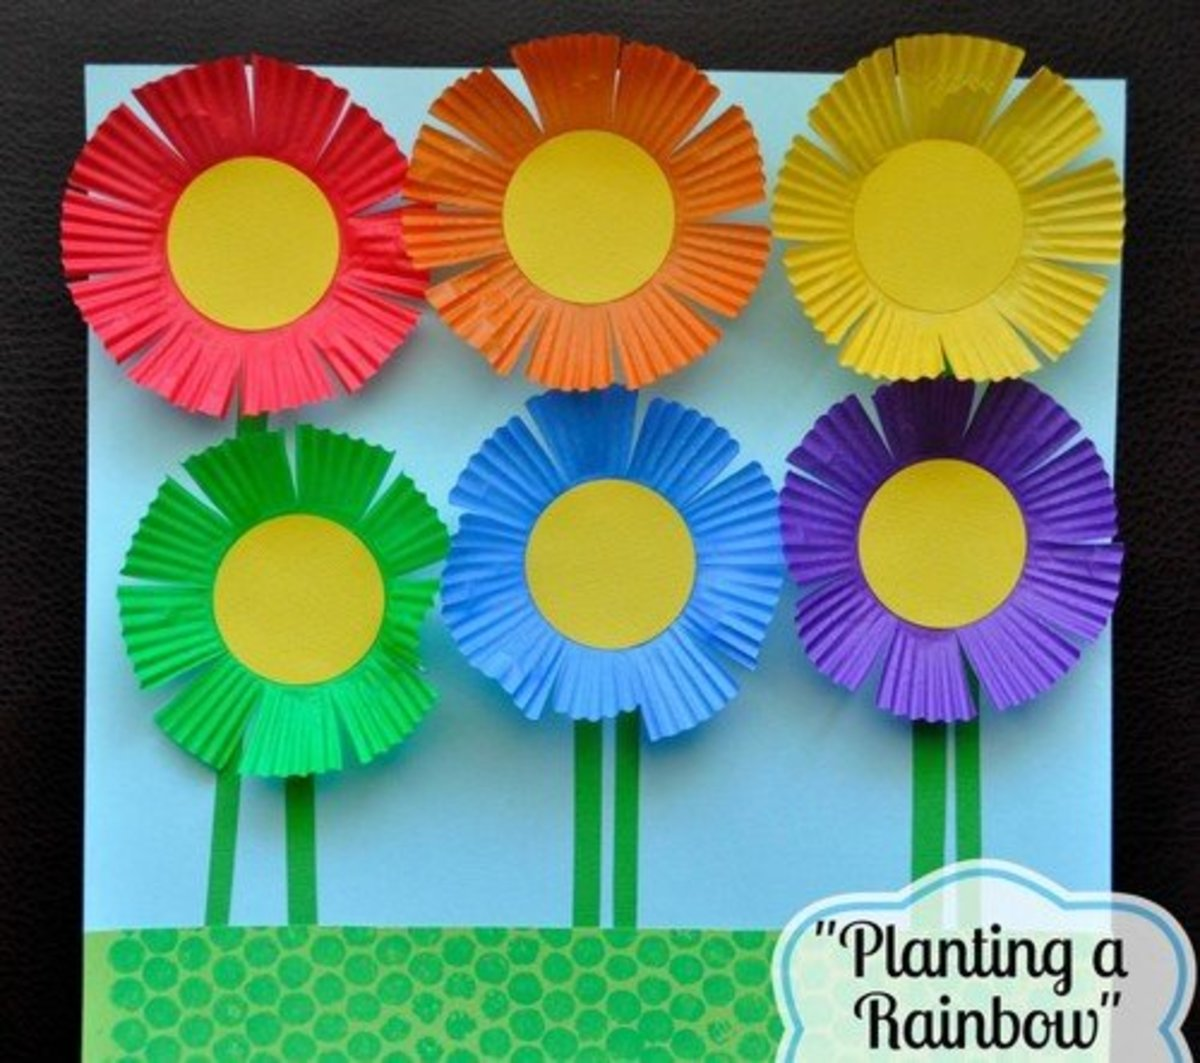 44 Fun and Easy Craft Ideas for Little Kids